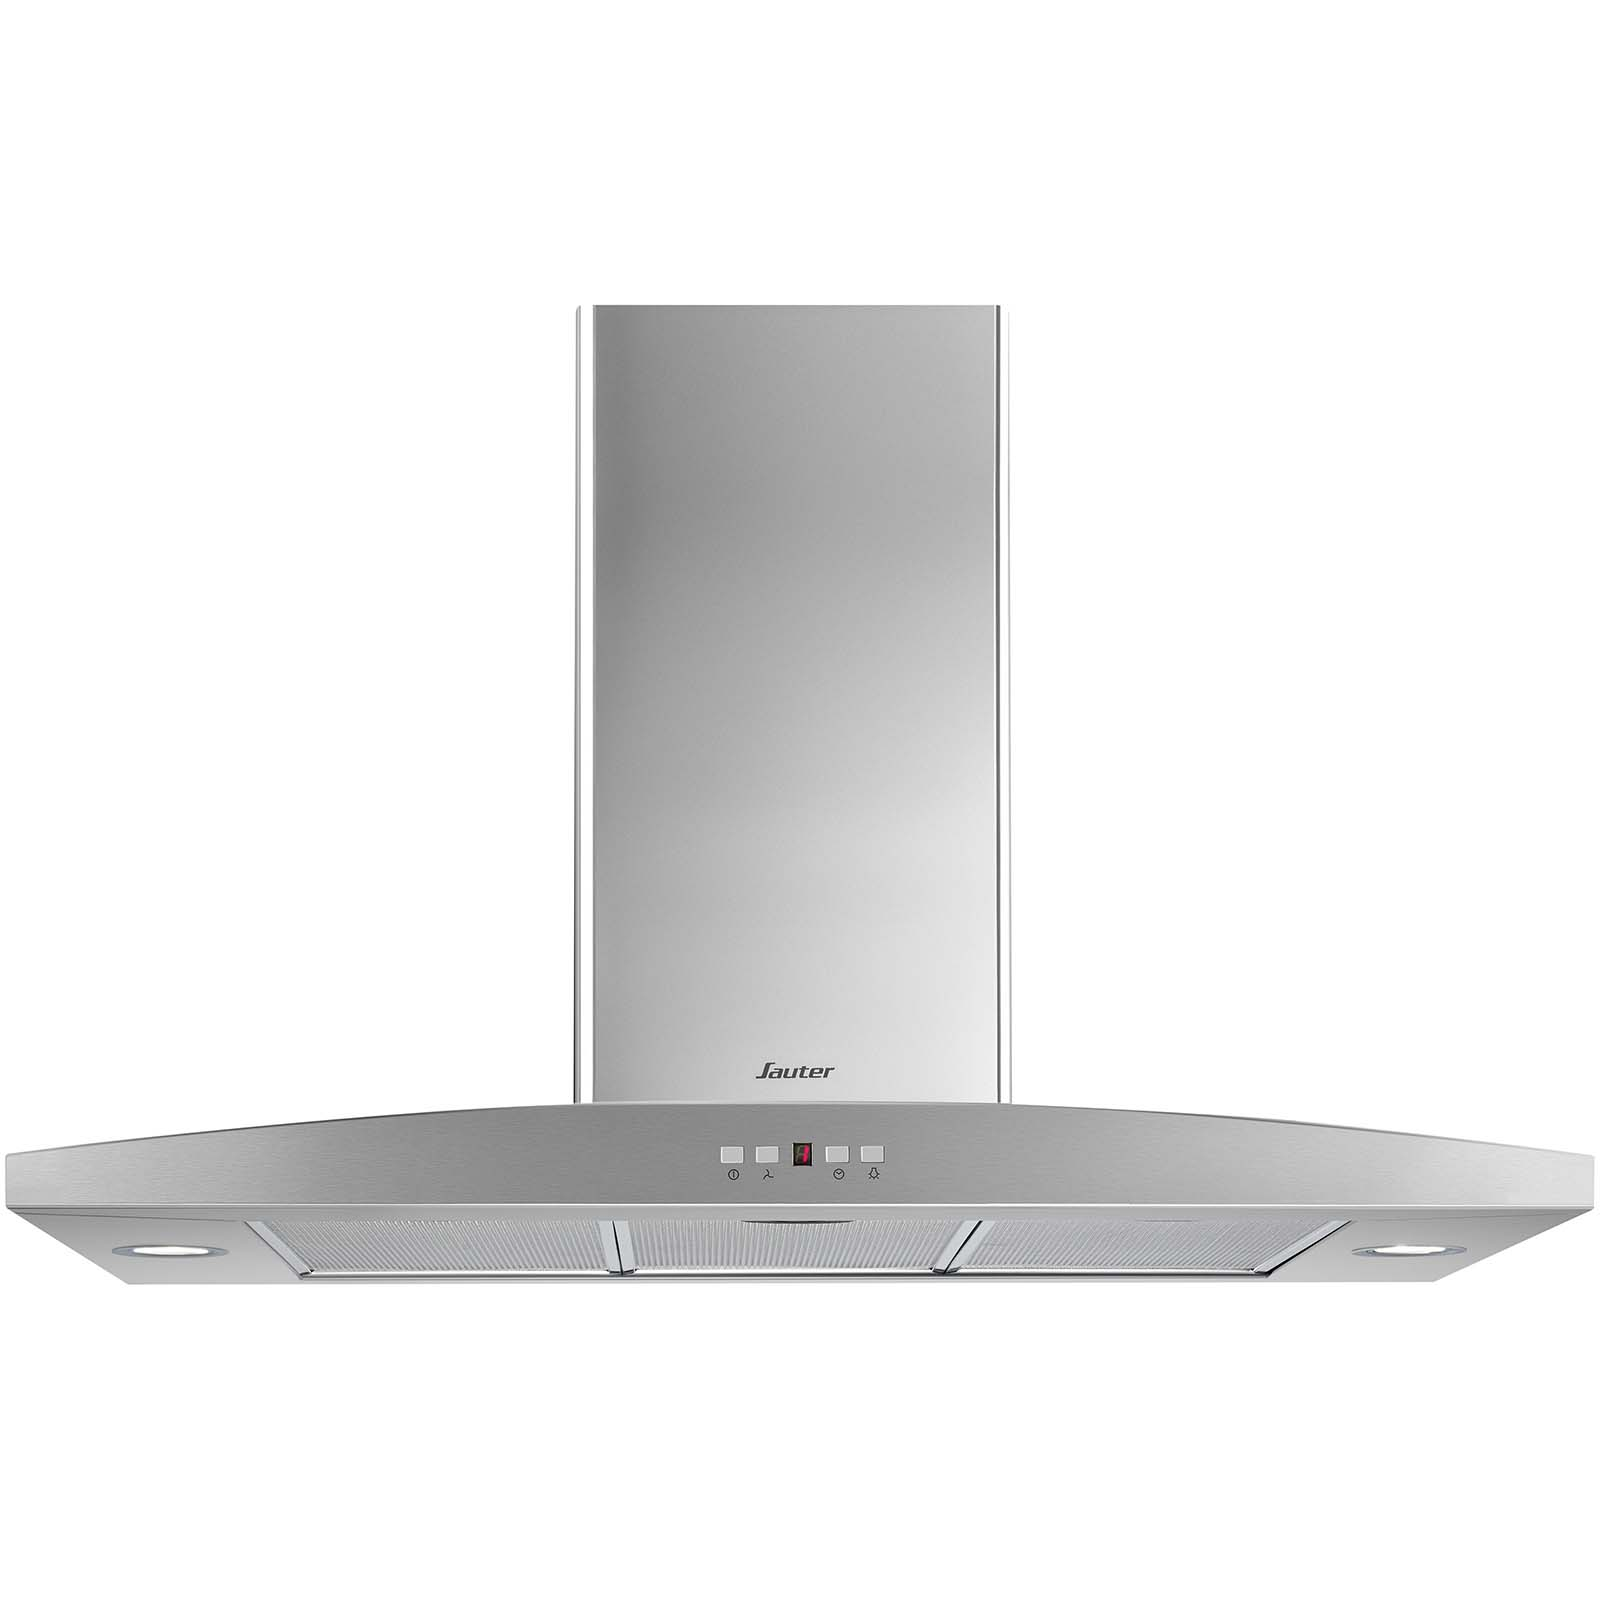 Hotte siemens lc67bb532 pas cher - Hotte decorative pas chere ...